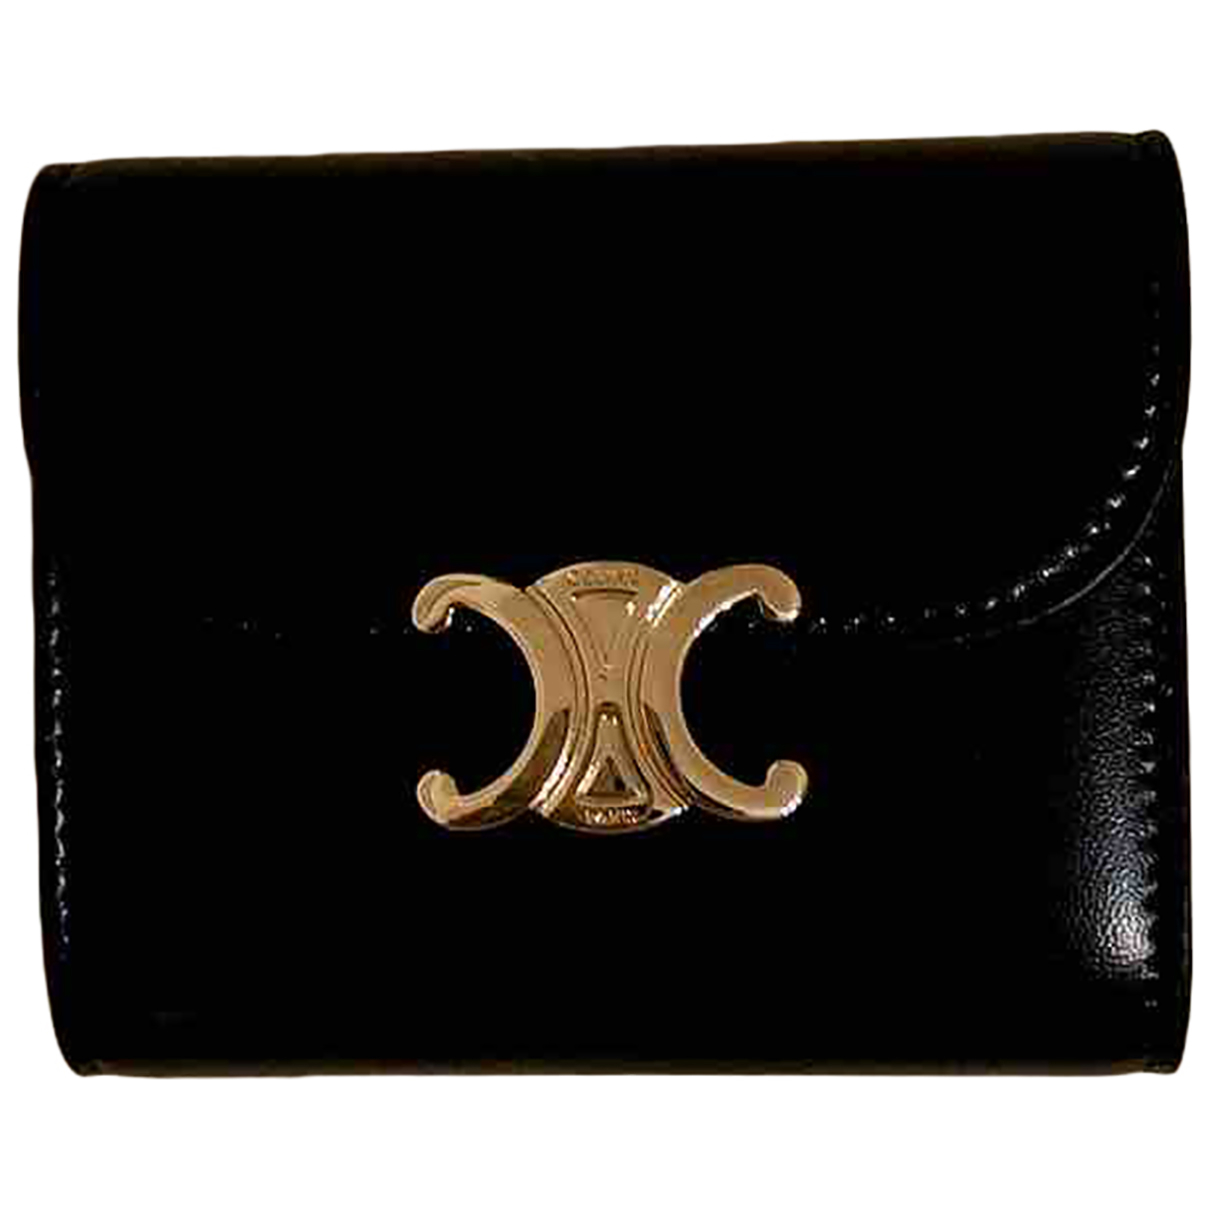 Celine \N Black Leather wallet for Women \N